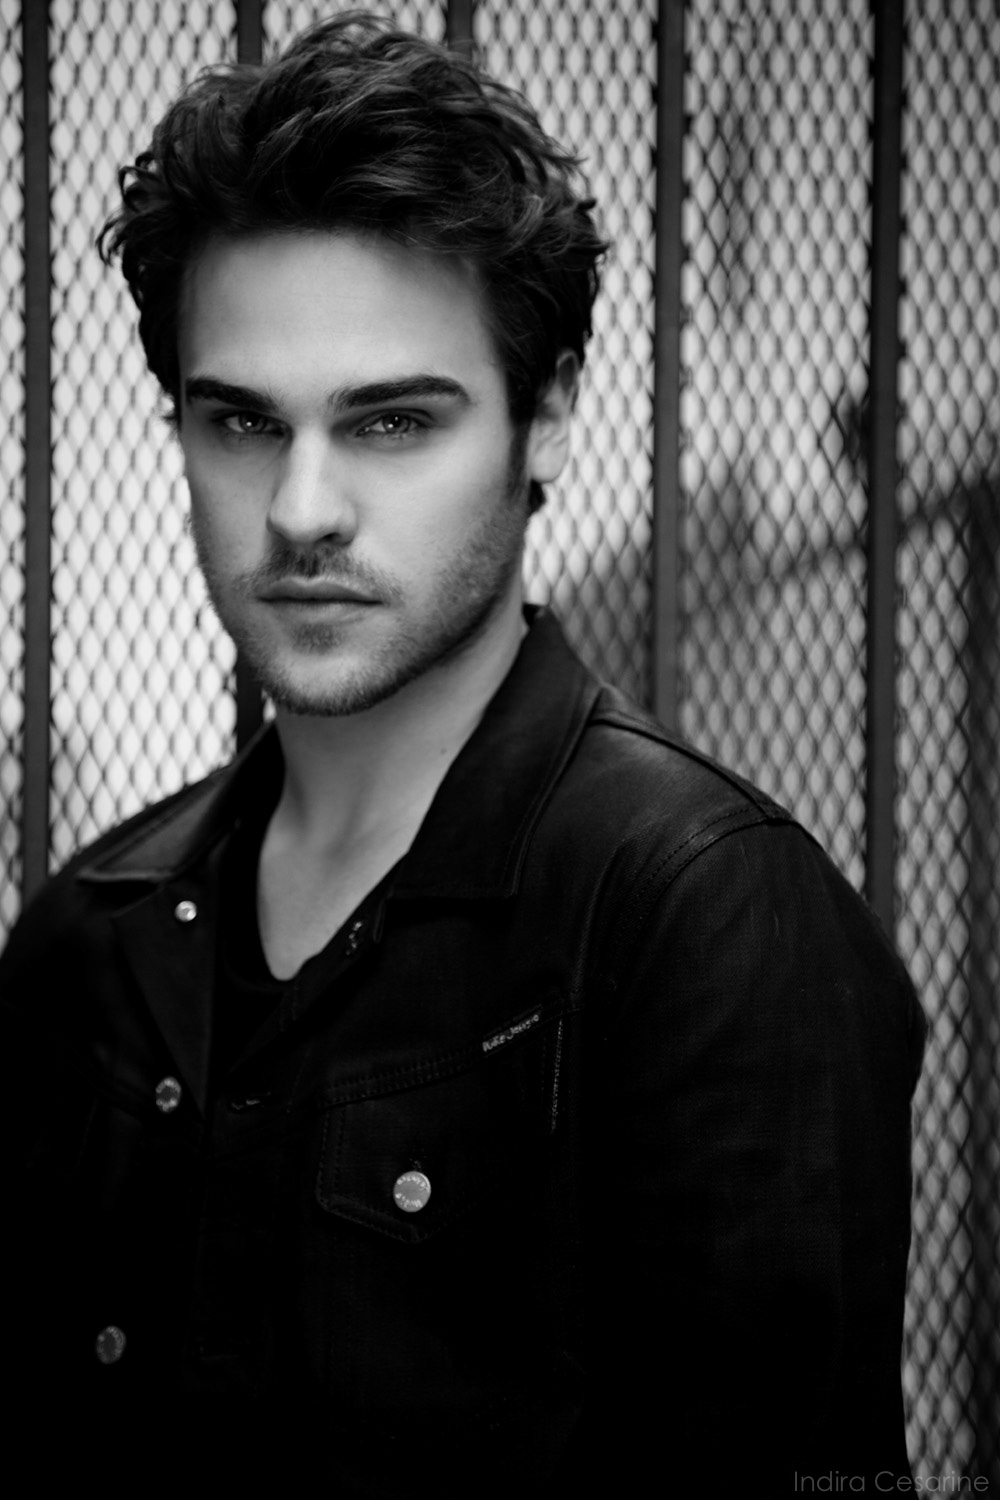 Grey-Damon-Photography-by-Indira-Cesarine-012.jpg